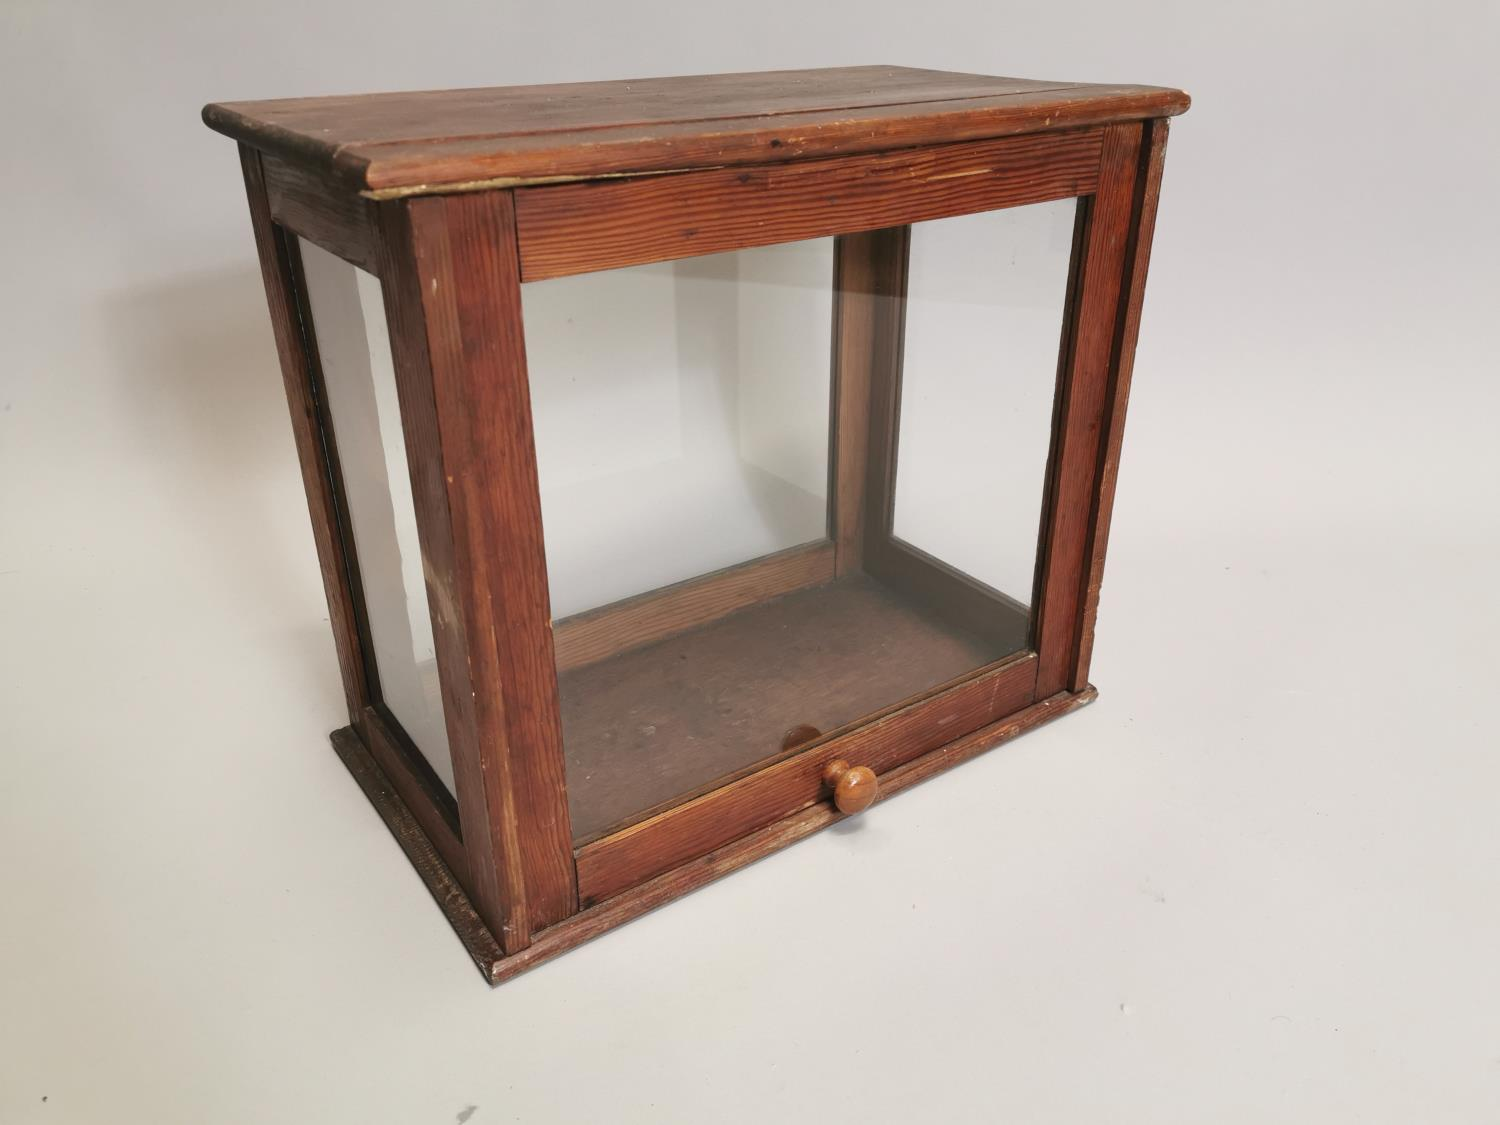 Early 20th. C. glazed pine display cabinet